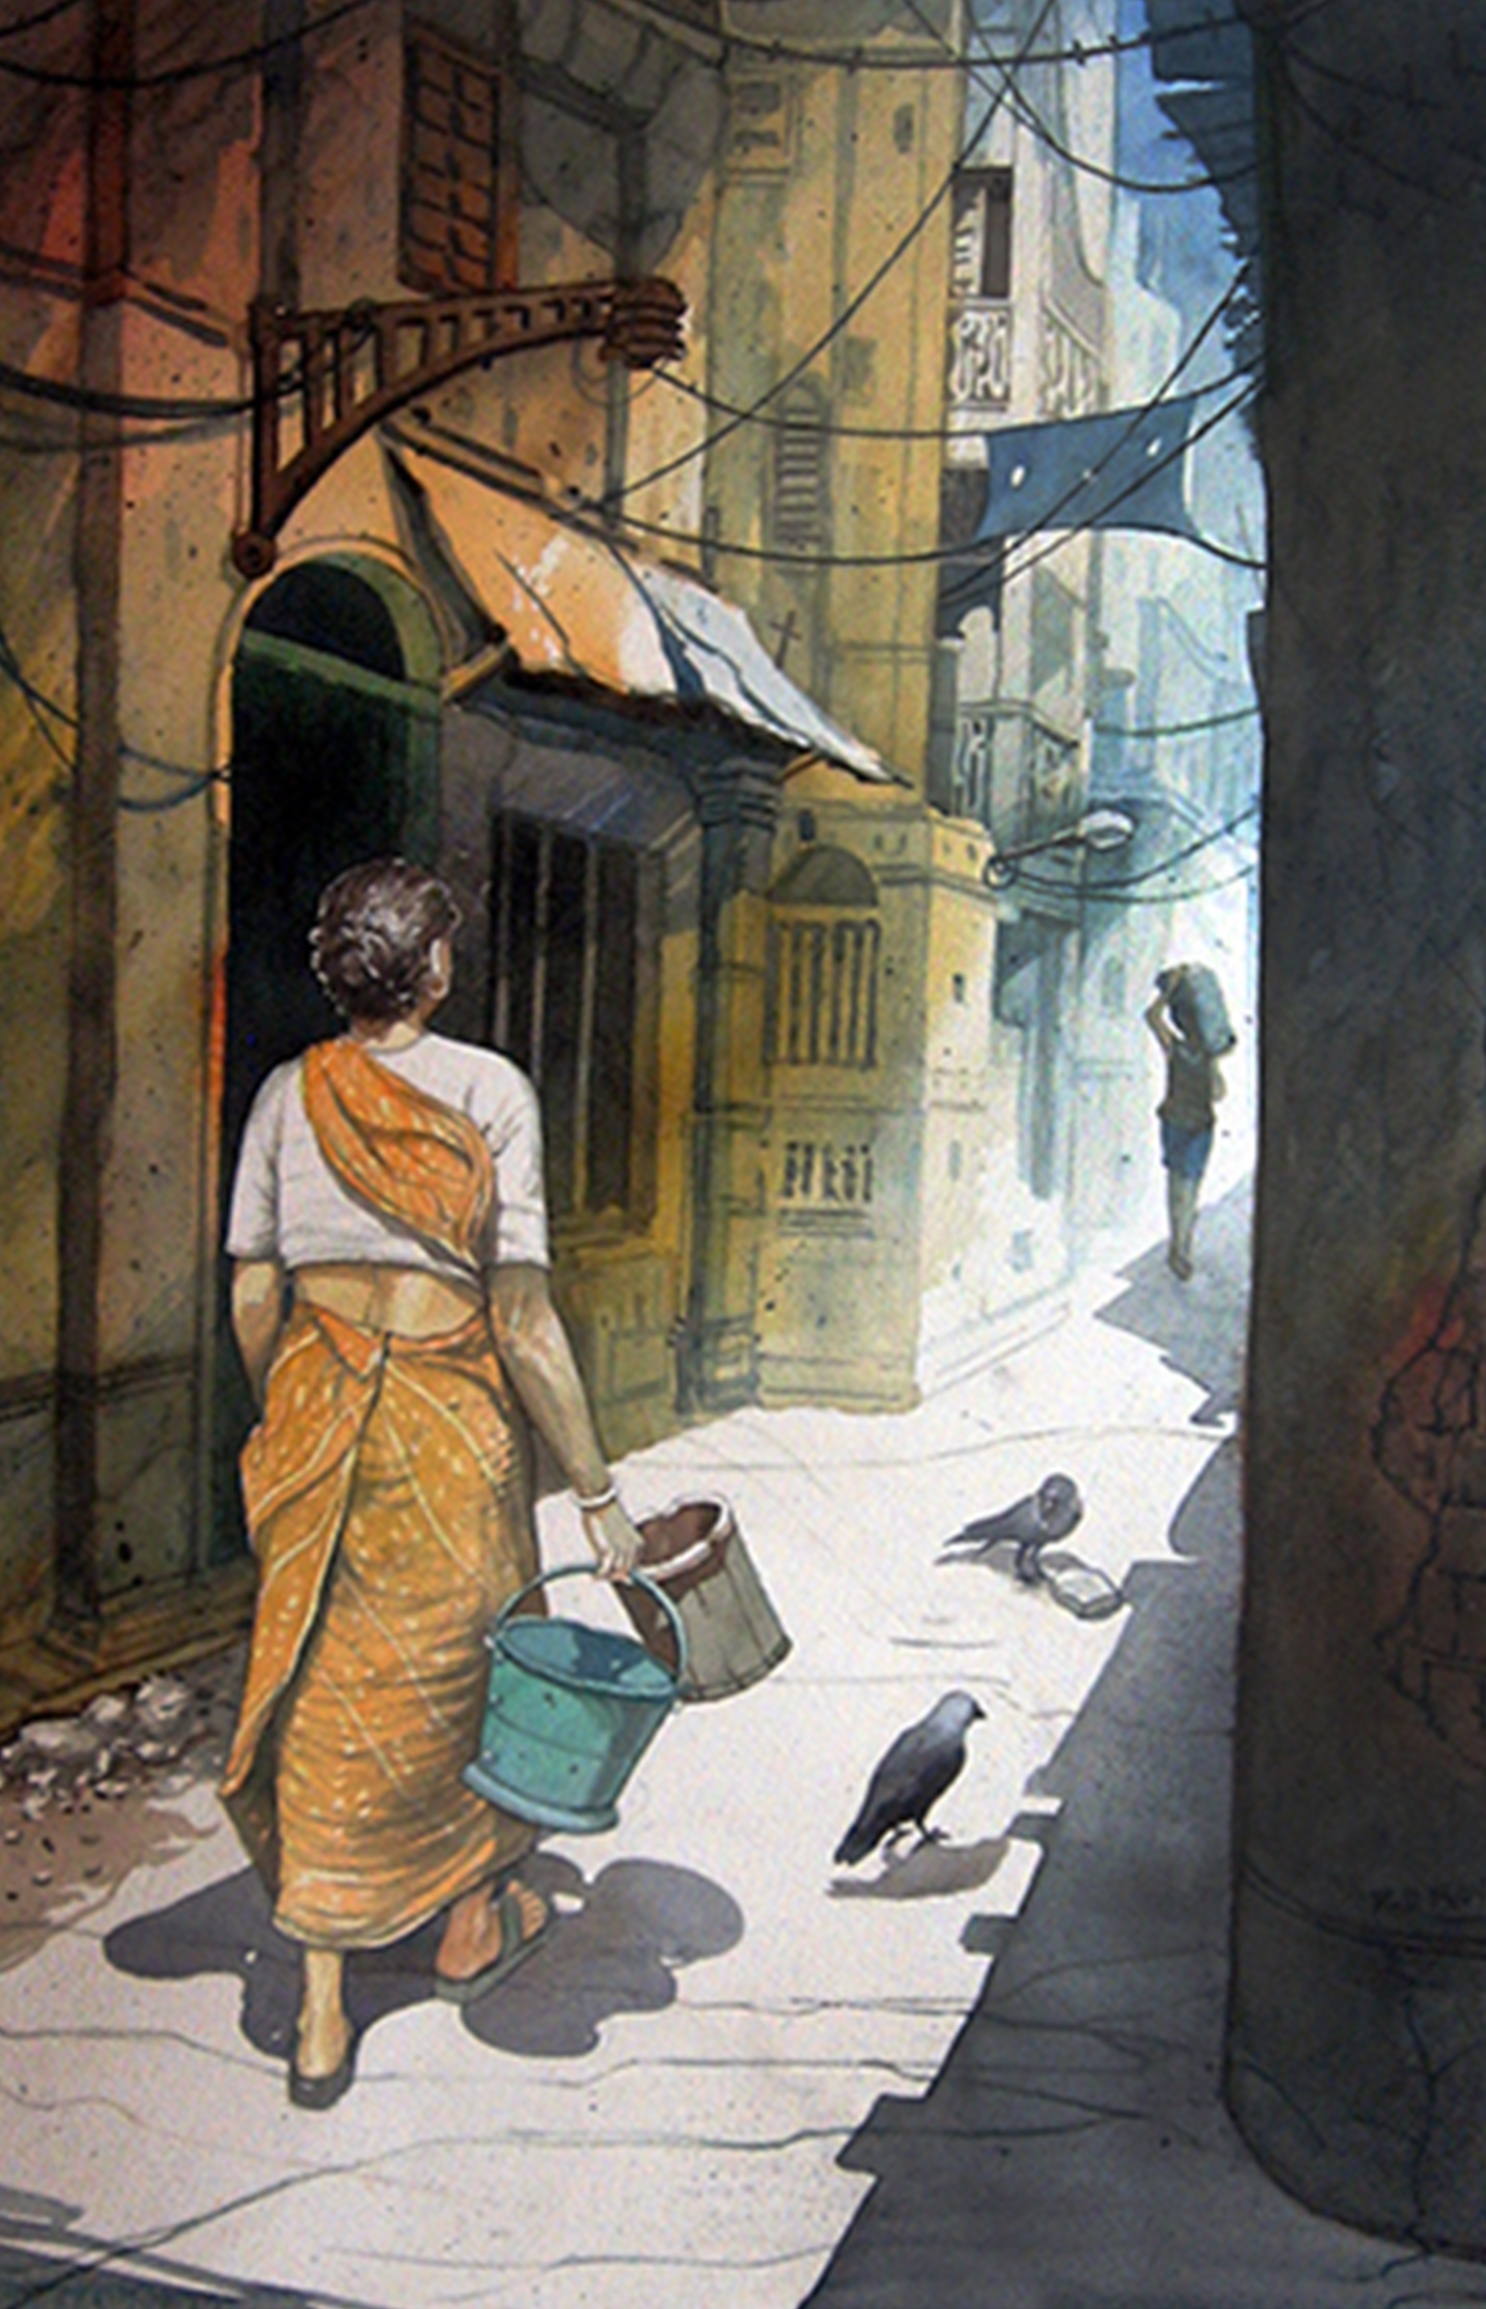 Buy Painting Kolkata Artwork No 8576 by Indian Artist R.d. Roy for Simple Street Painting  45hul